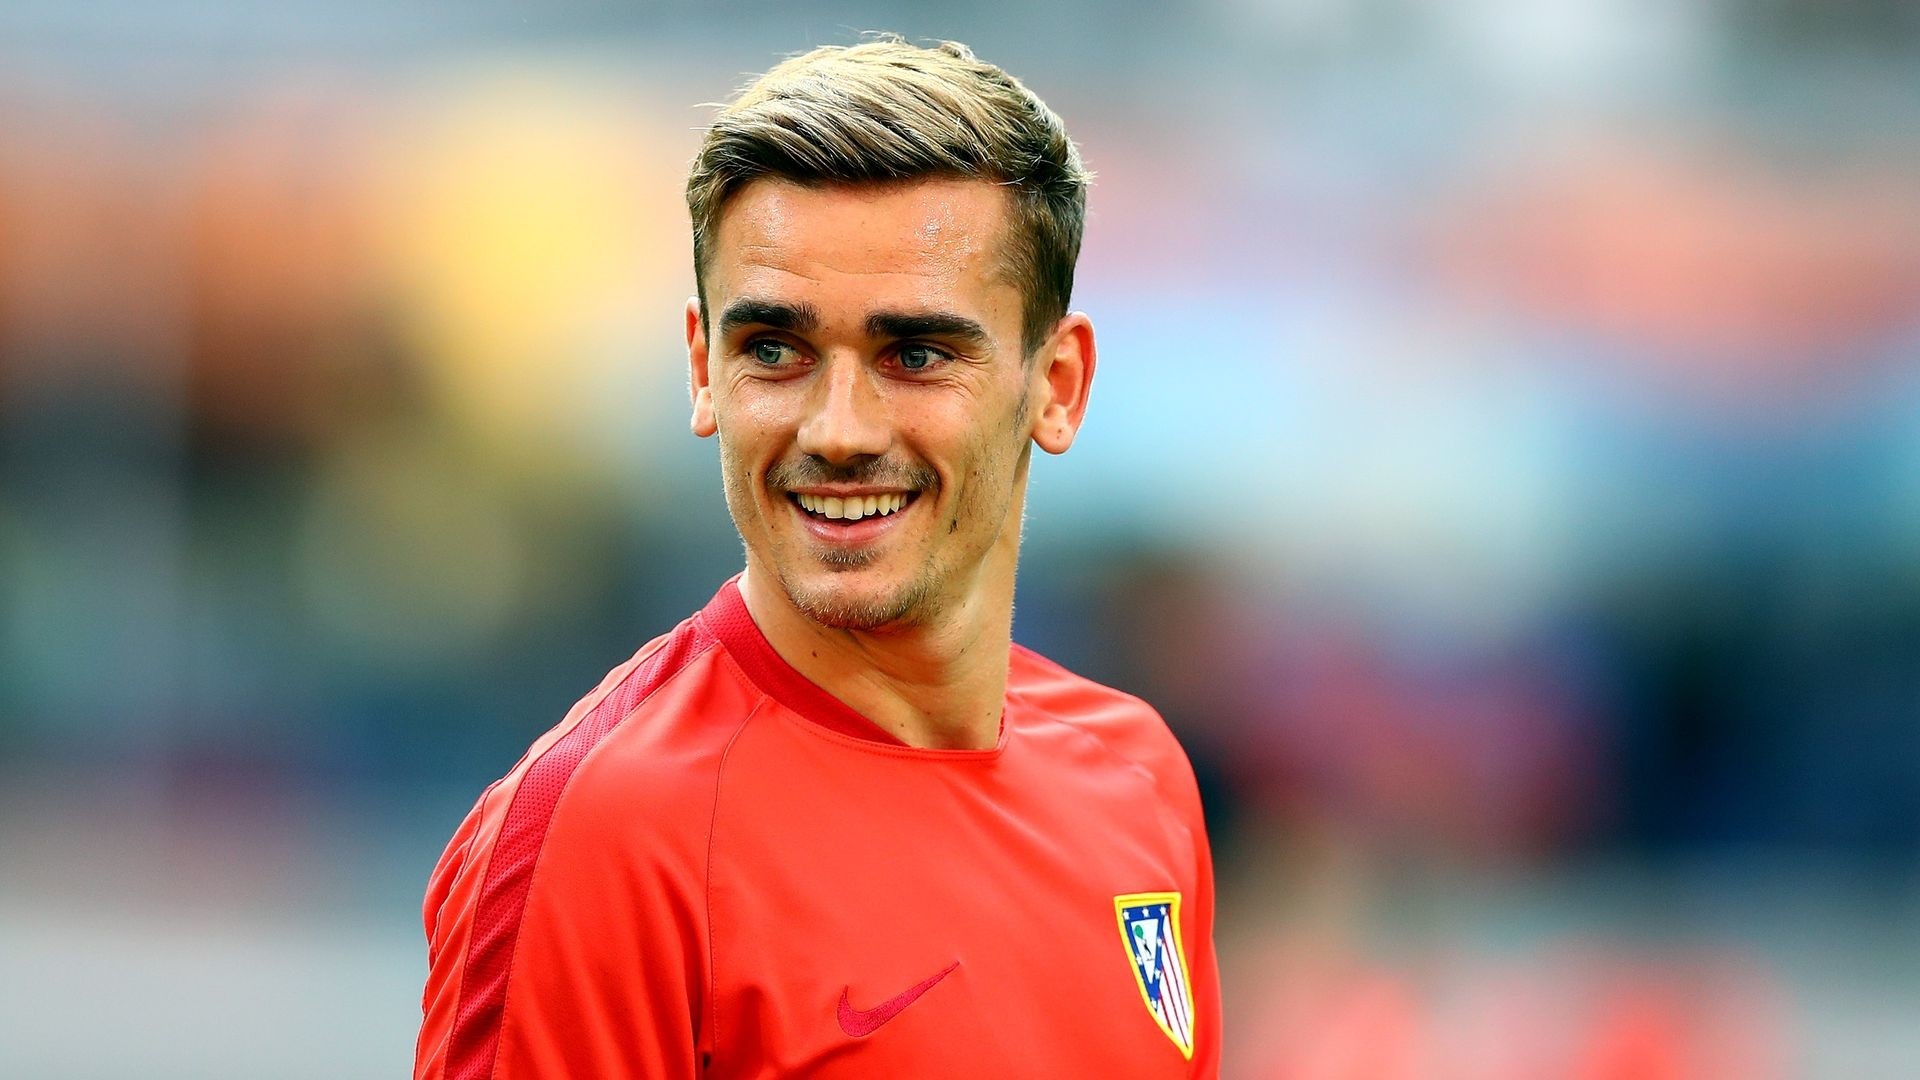 Ronaldo Hd Wallpapers Football Antoine Griezmann Wallpapers 86 Images